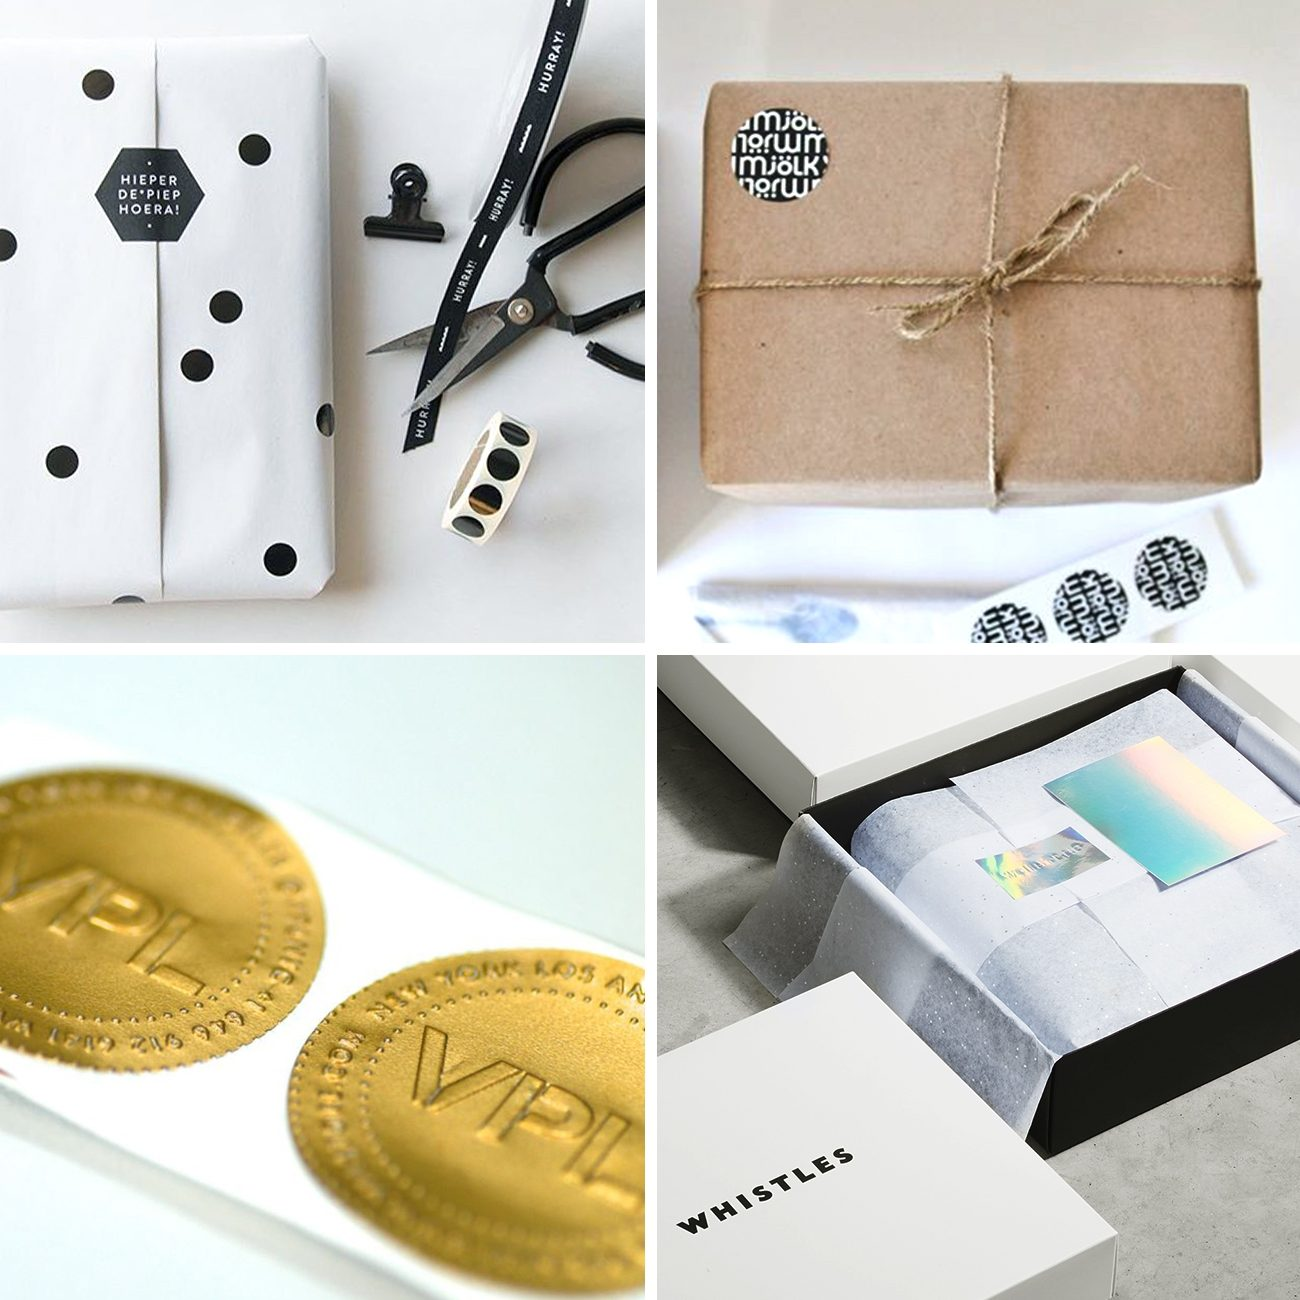 Photos via: Buorx, Kado Design, Salita Bacchi, VPL store, Surface and Form 70 Ideas to Spruce Up Your Holiday Packaging Design